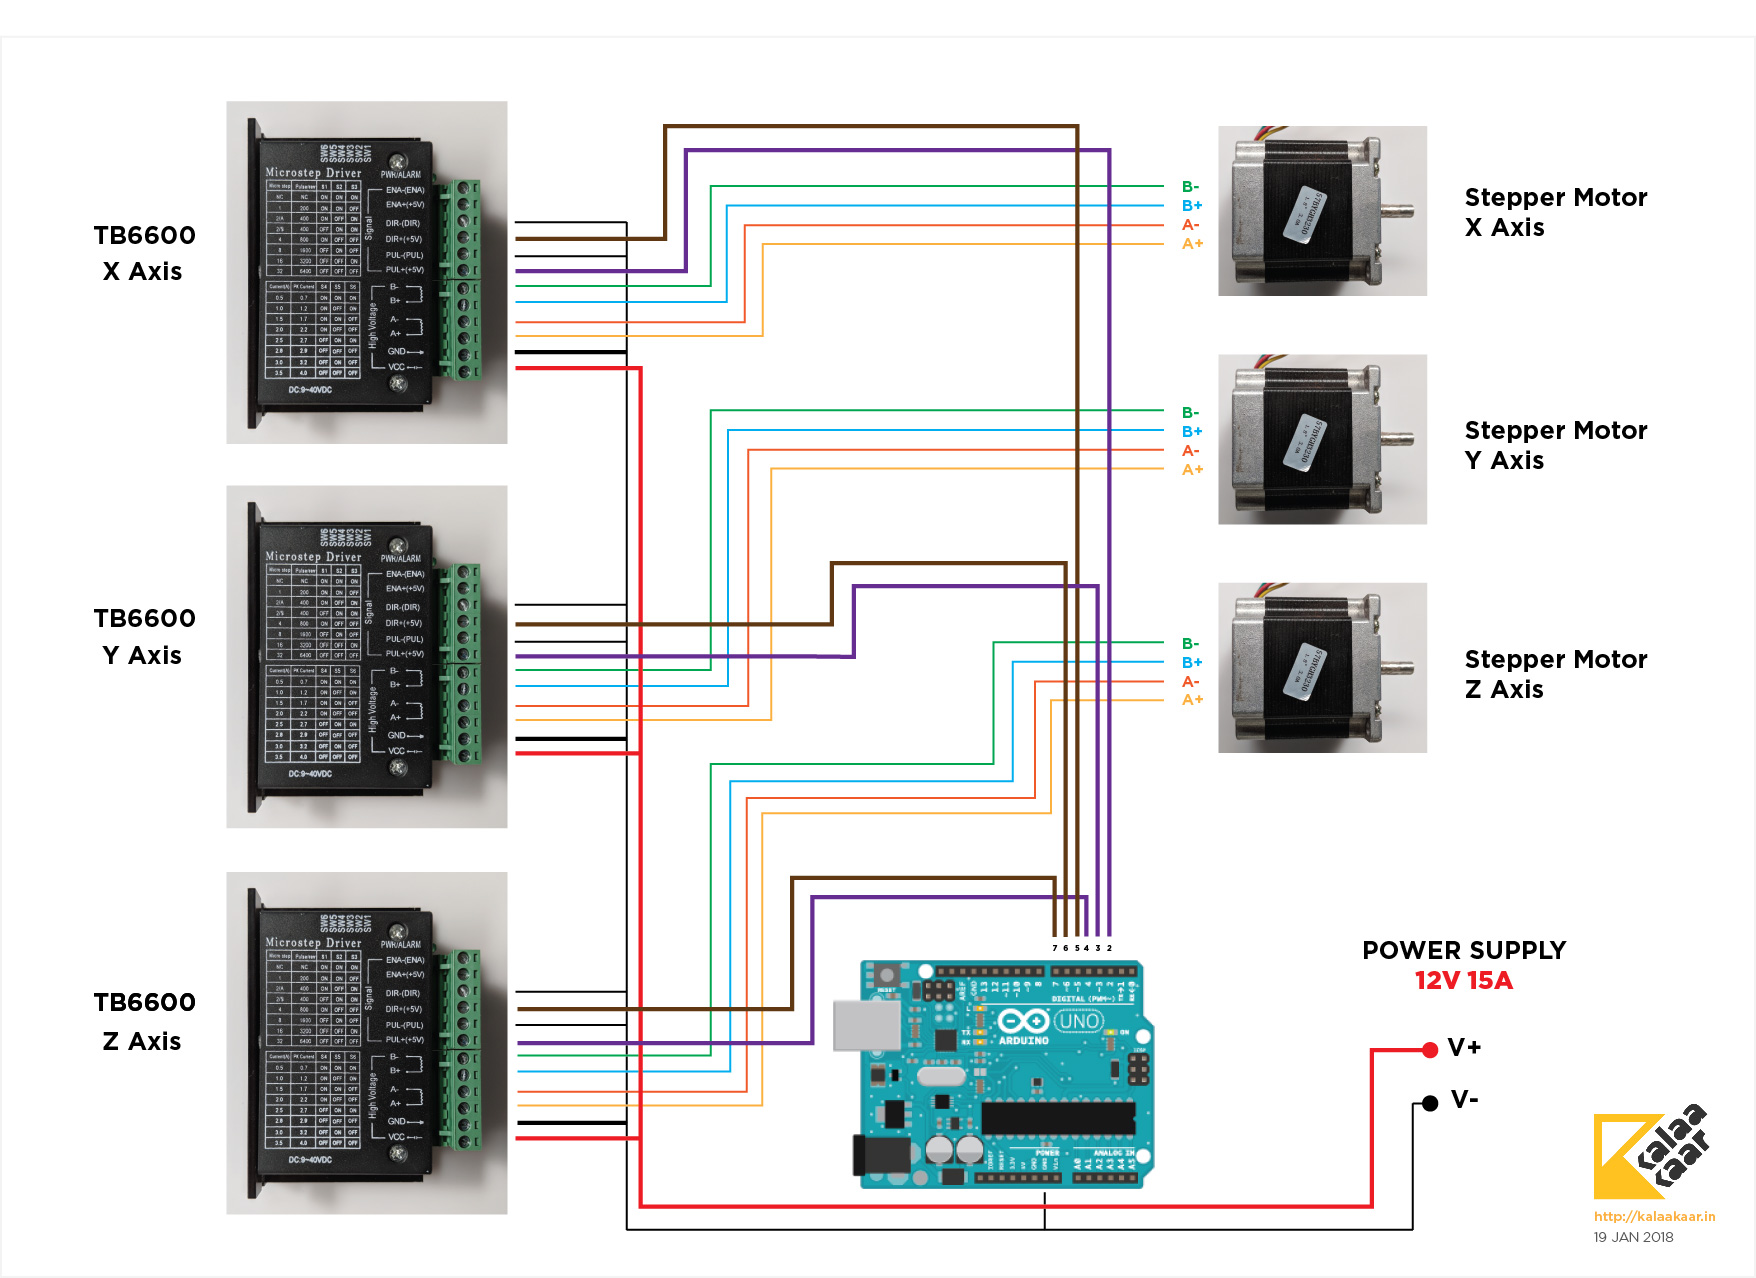 Wiring Diagram For Computer Power Supply Guide And Troubleshooting Atx Schematic Cnc Controller With Arduino Tb6600 Grbl Kalaakaar Makerspace Pin